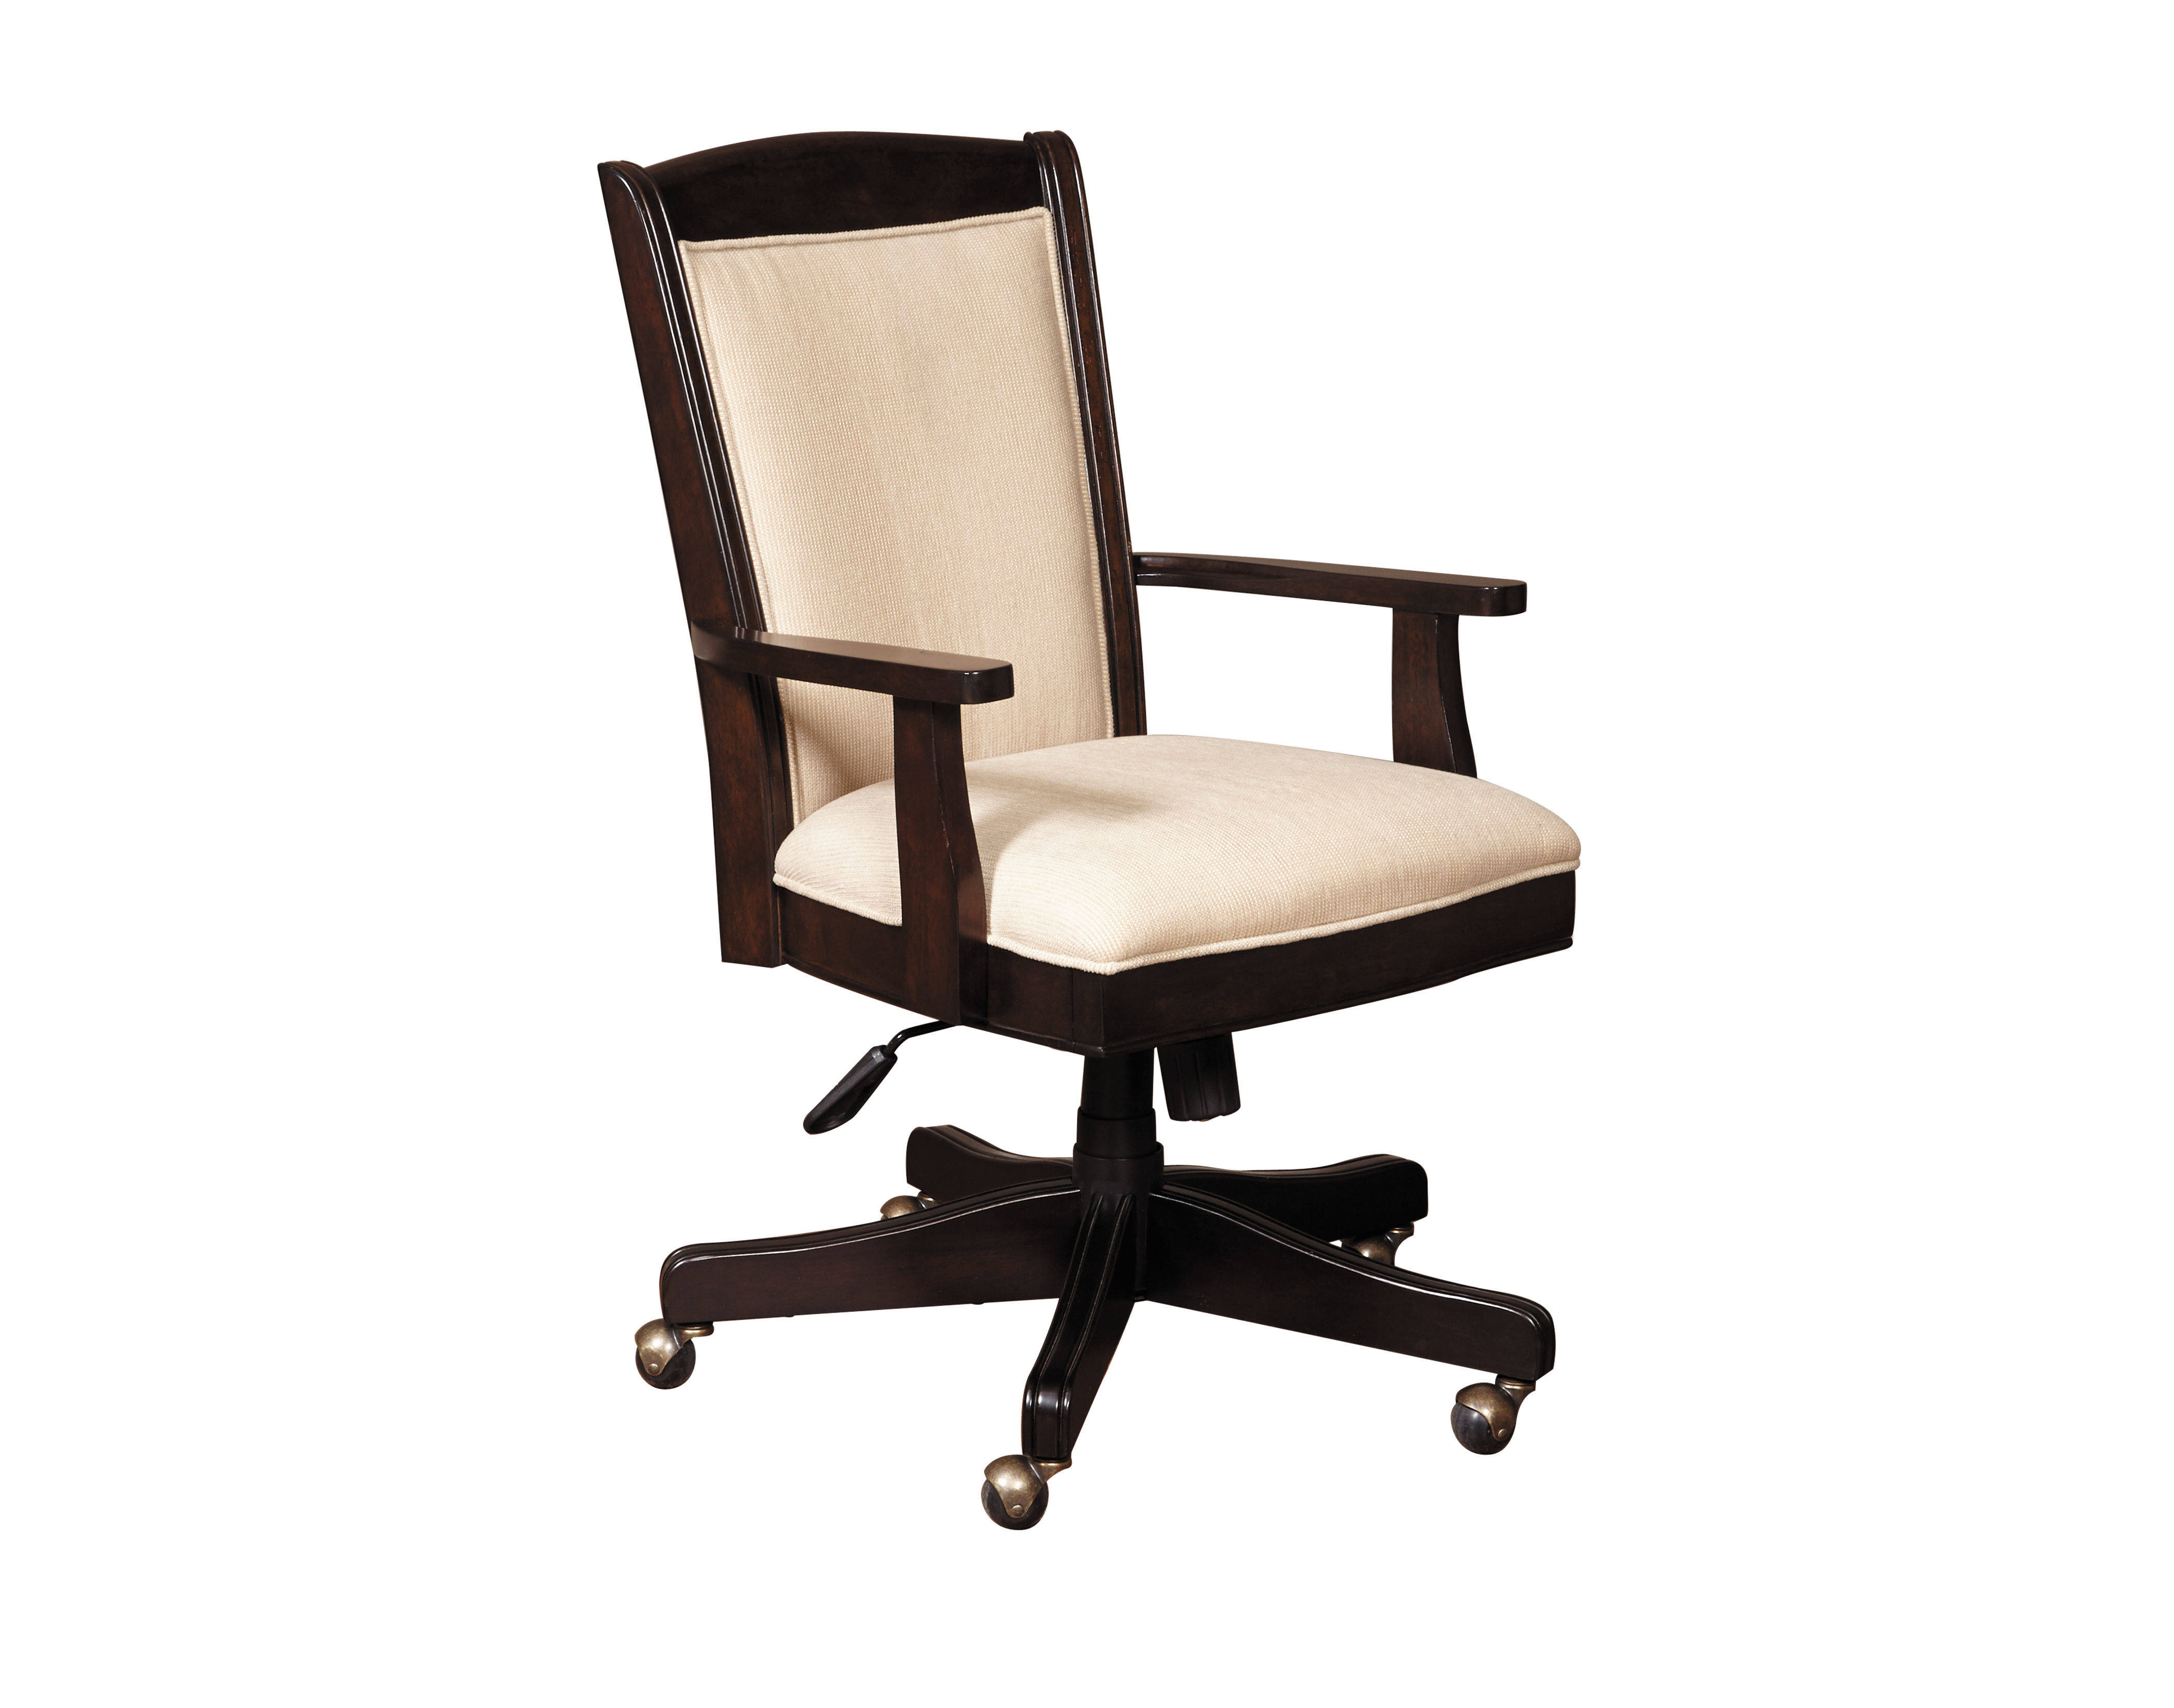 Home Meridian Homework Brown 2 0 Executive Desk Chair